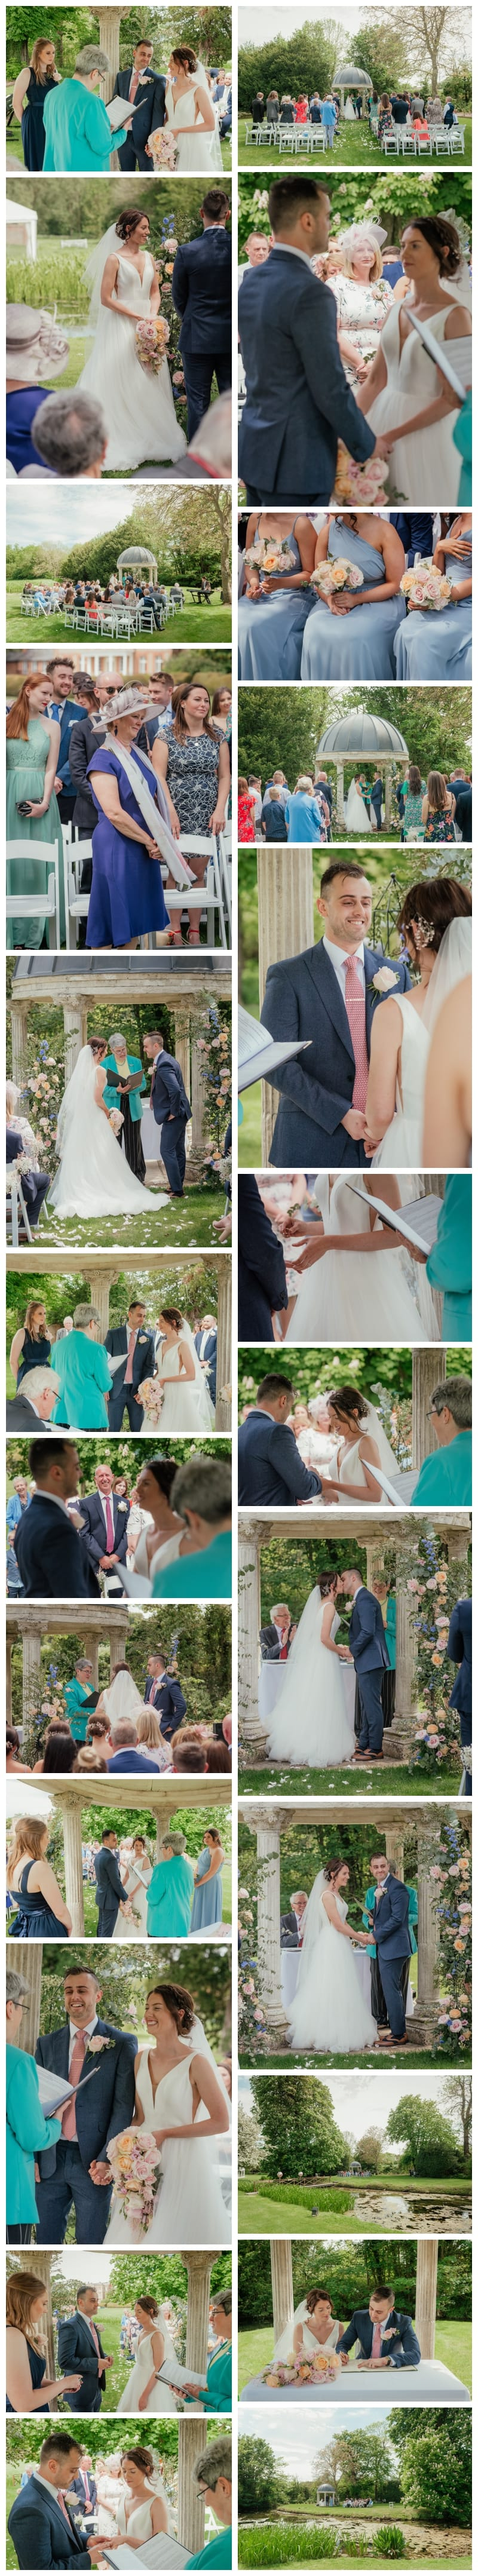 Ardington House Wedding Ceremony under arbour